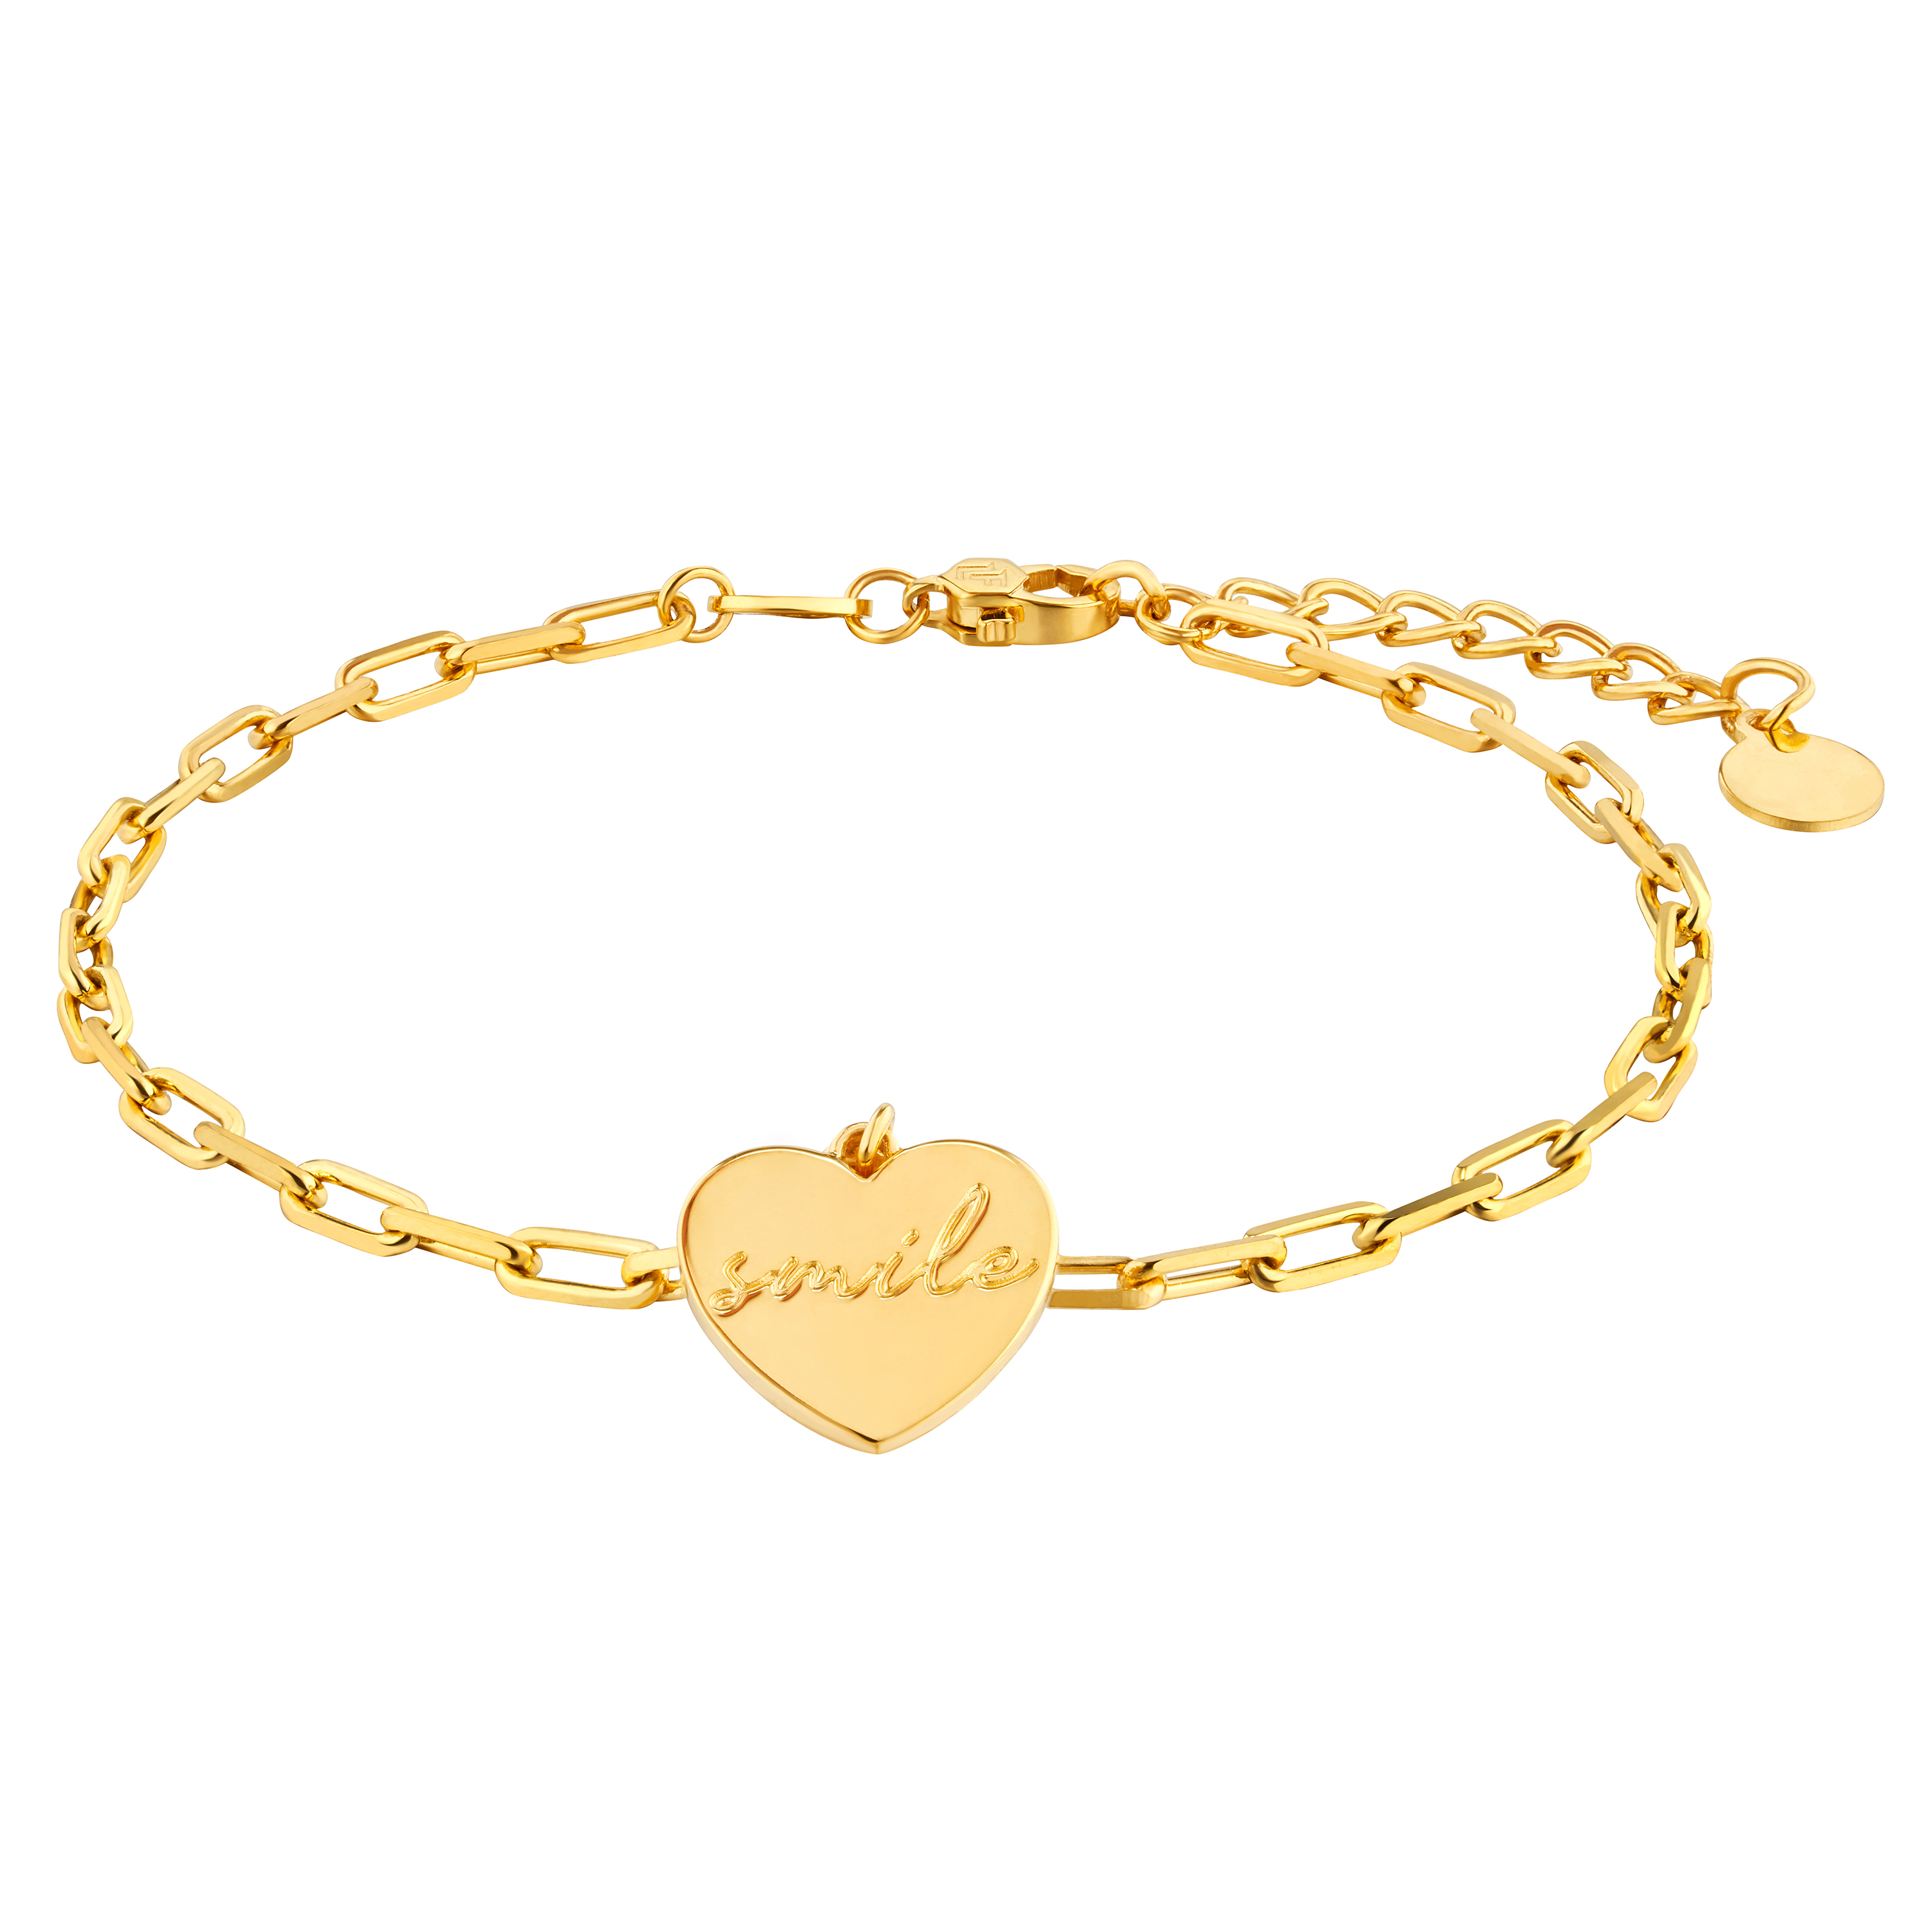 Gold of Light and Shadow Heart-shaped Bracelet